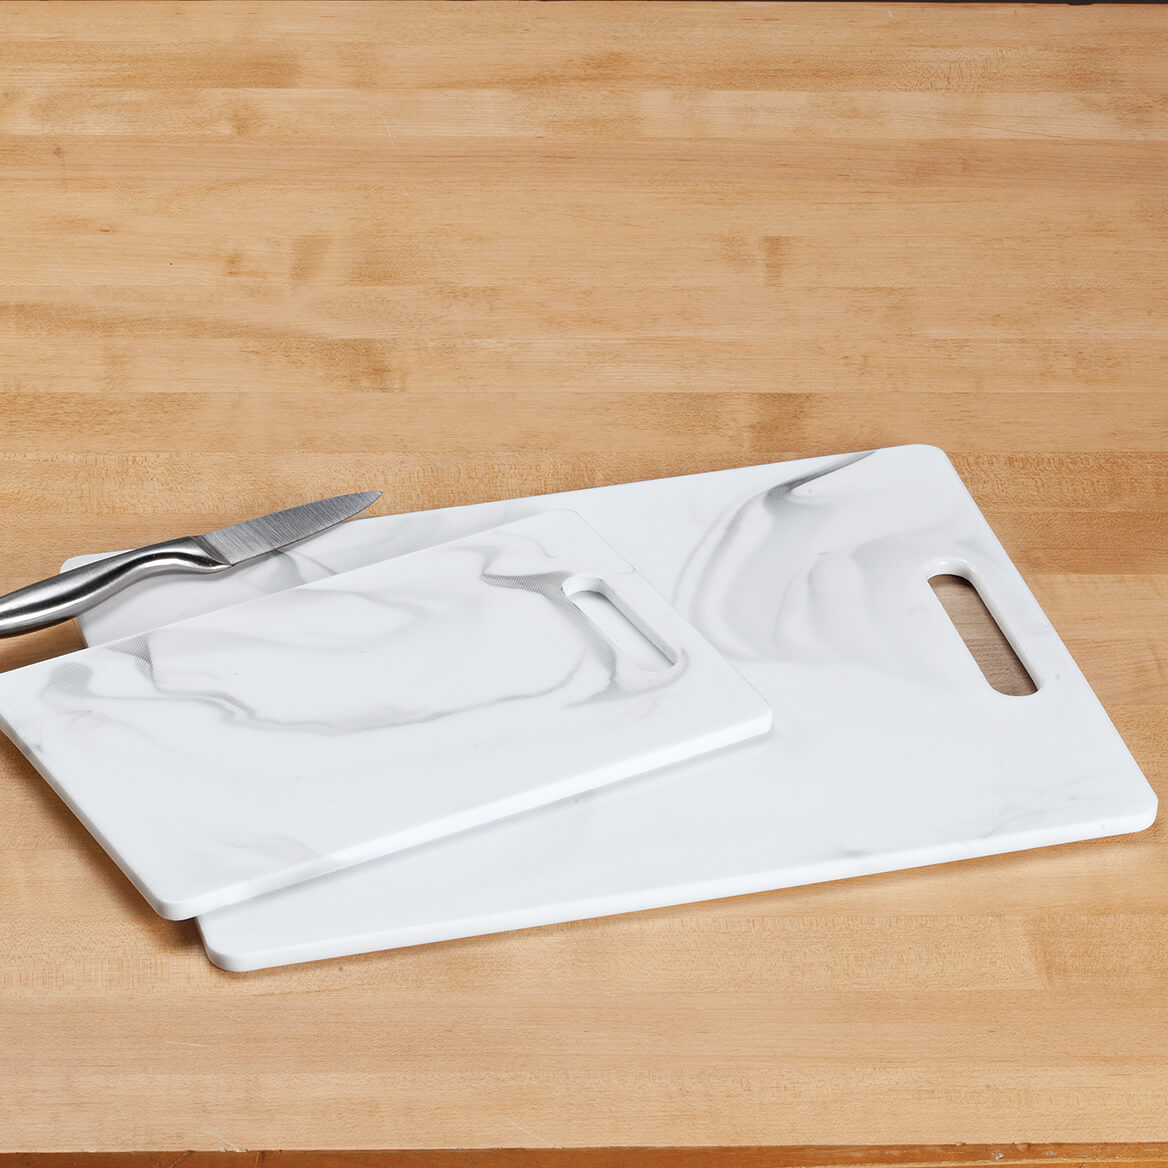 2 Pc Faux Marble Melamine Cutting Board Set by HMP-368691